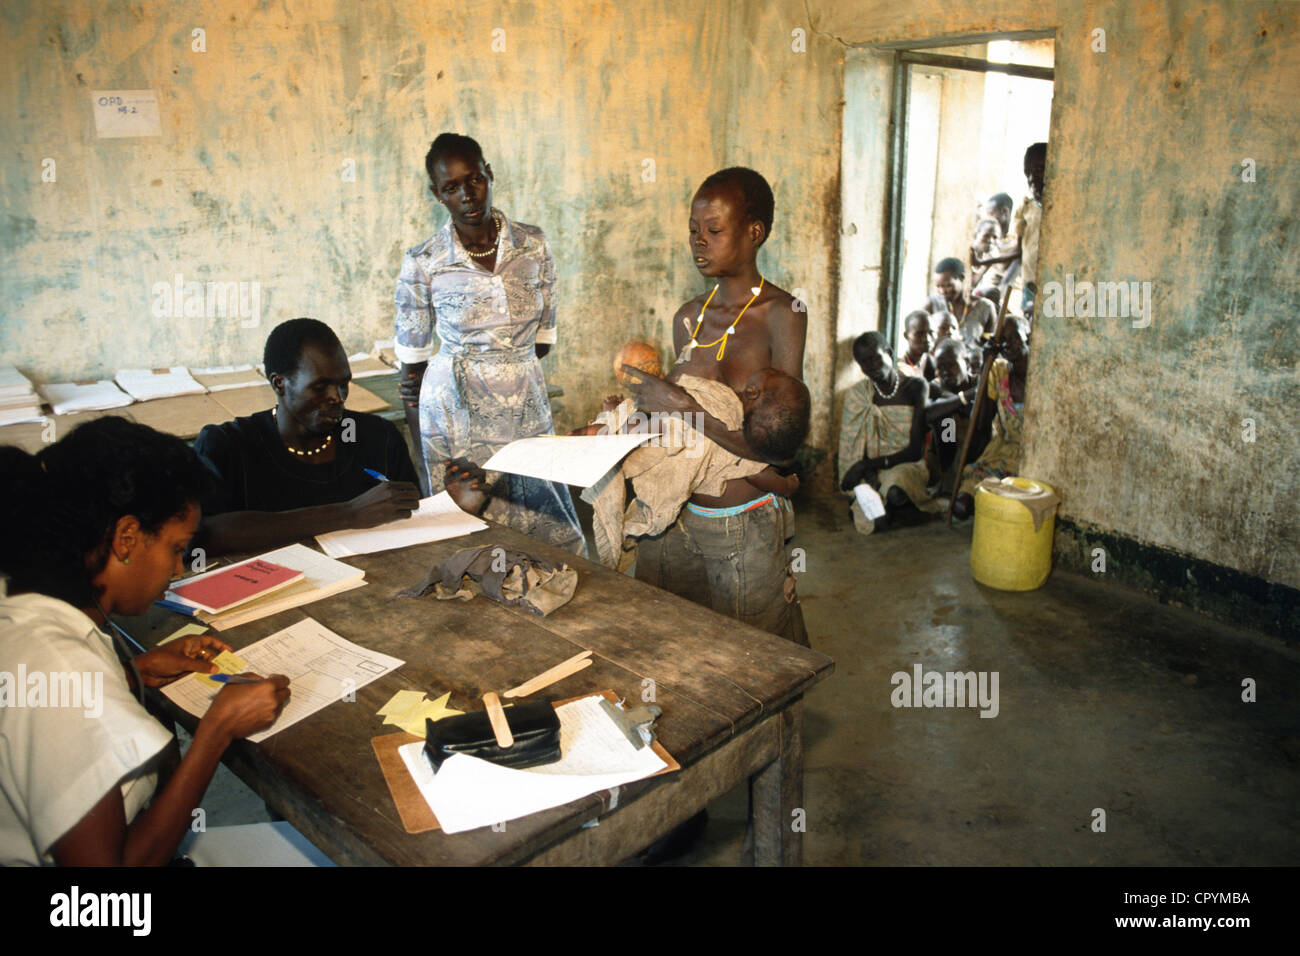 A rudimentary medical centre set up at the Thiet feeding camp in Southern Sudan. - Stock Image